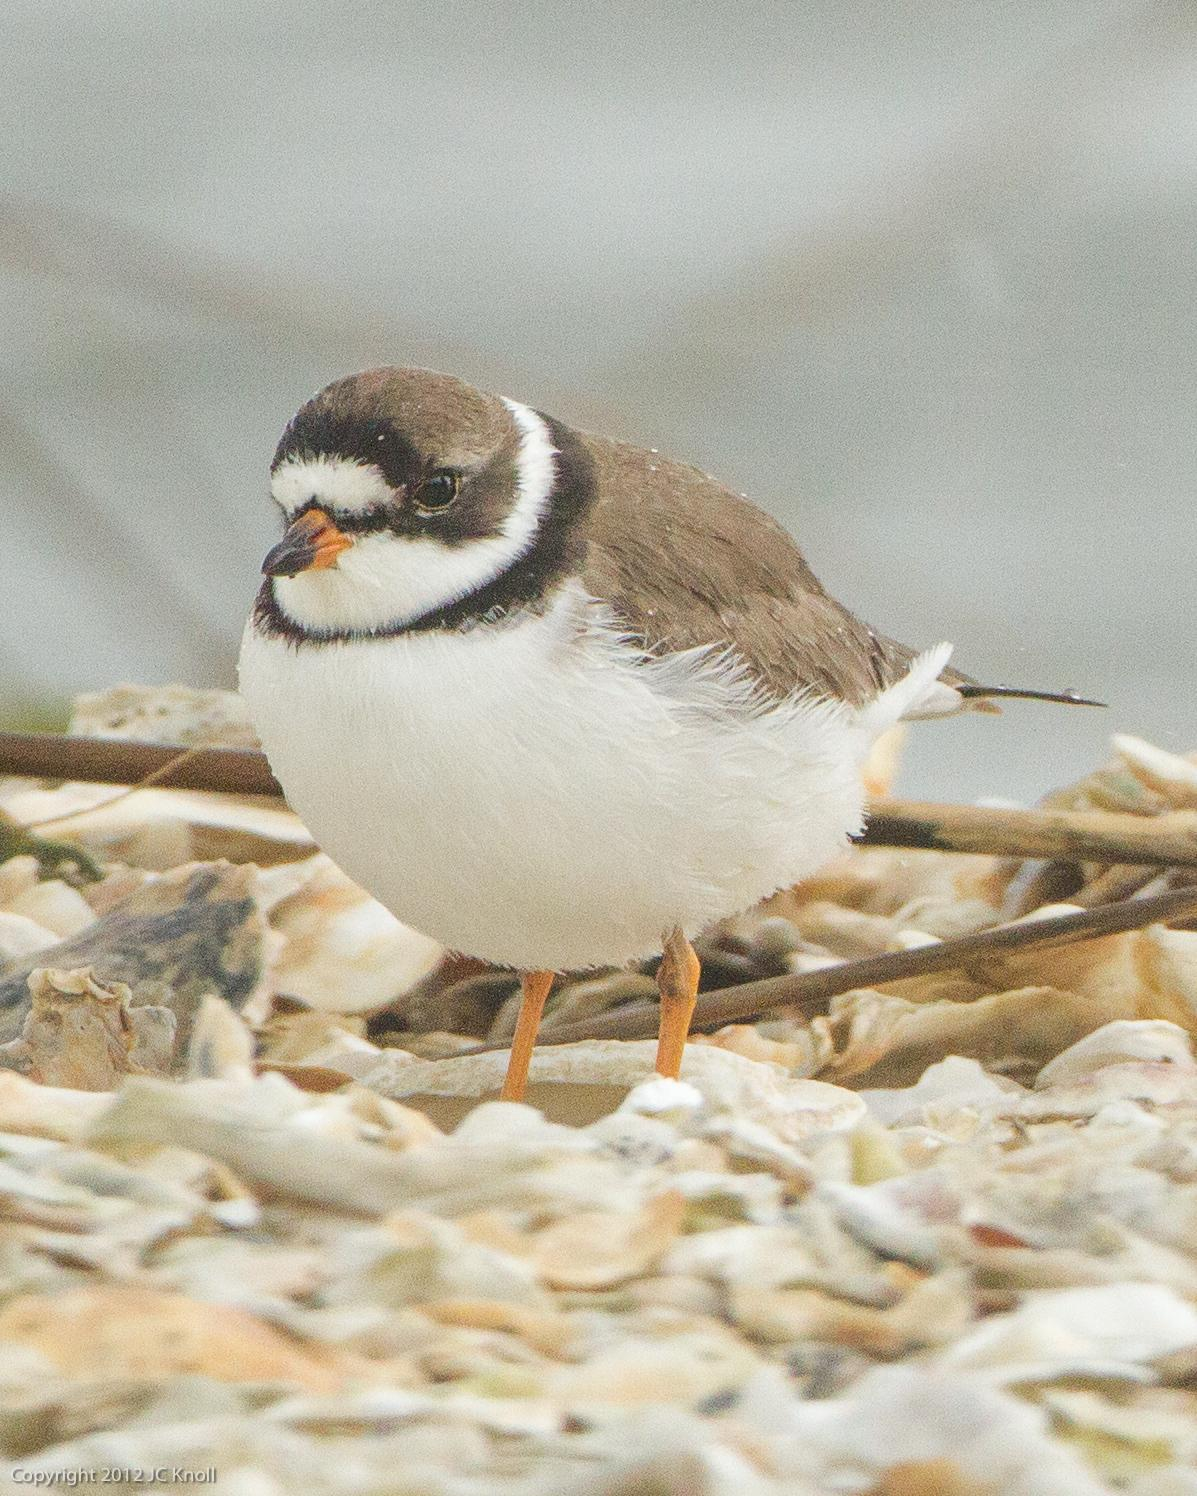 Semipalmated Plover Photo by JC Knoll